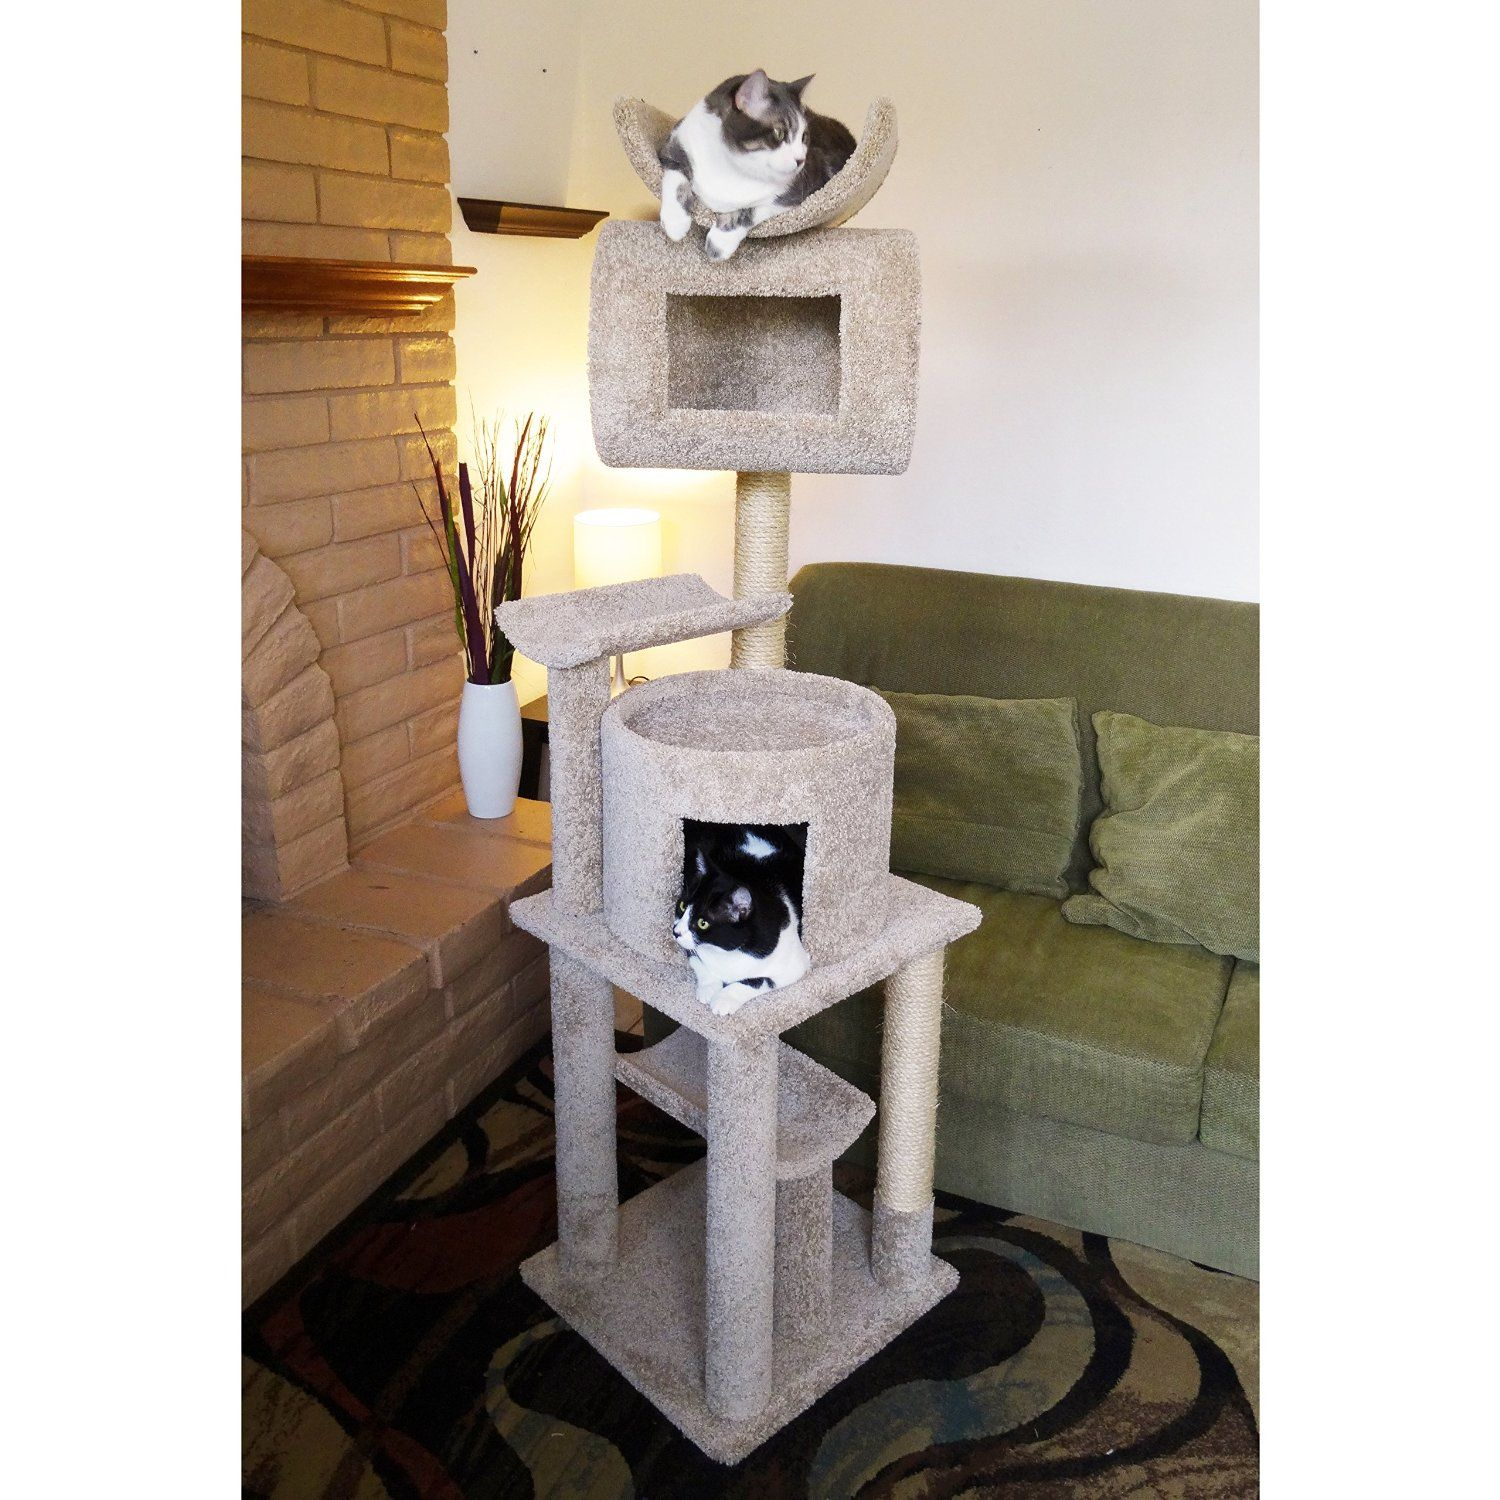 Cat Trees Carpet Covered Works Of Art? Cat tree house